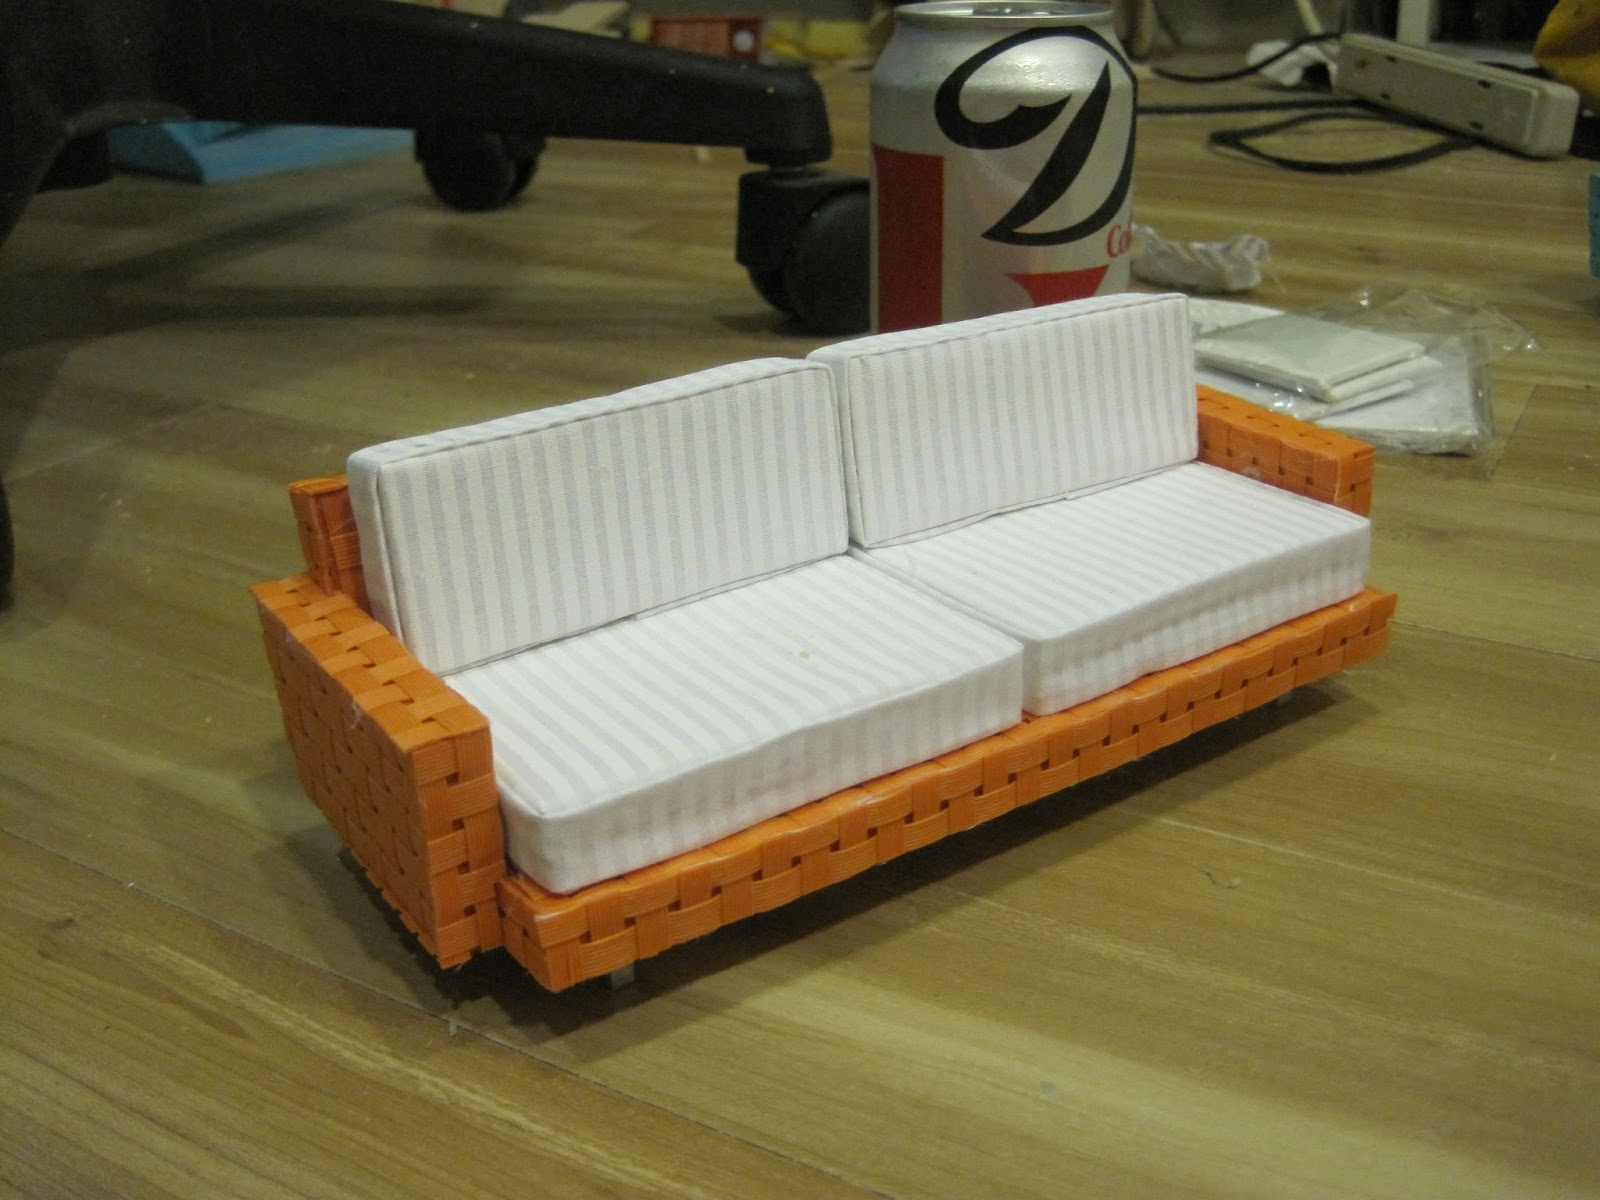 online white souvenirs toys miniature isolated and couch background picture on stock